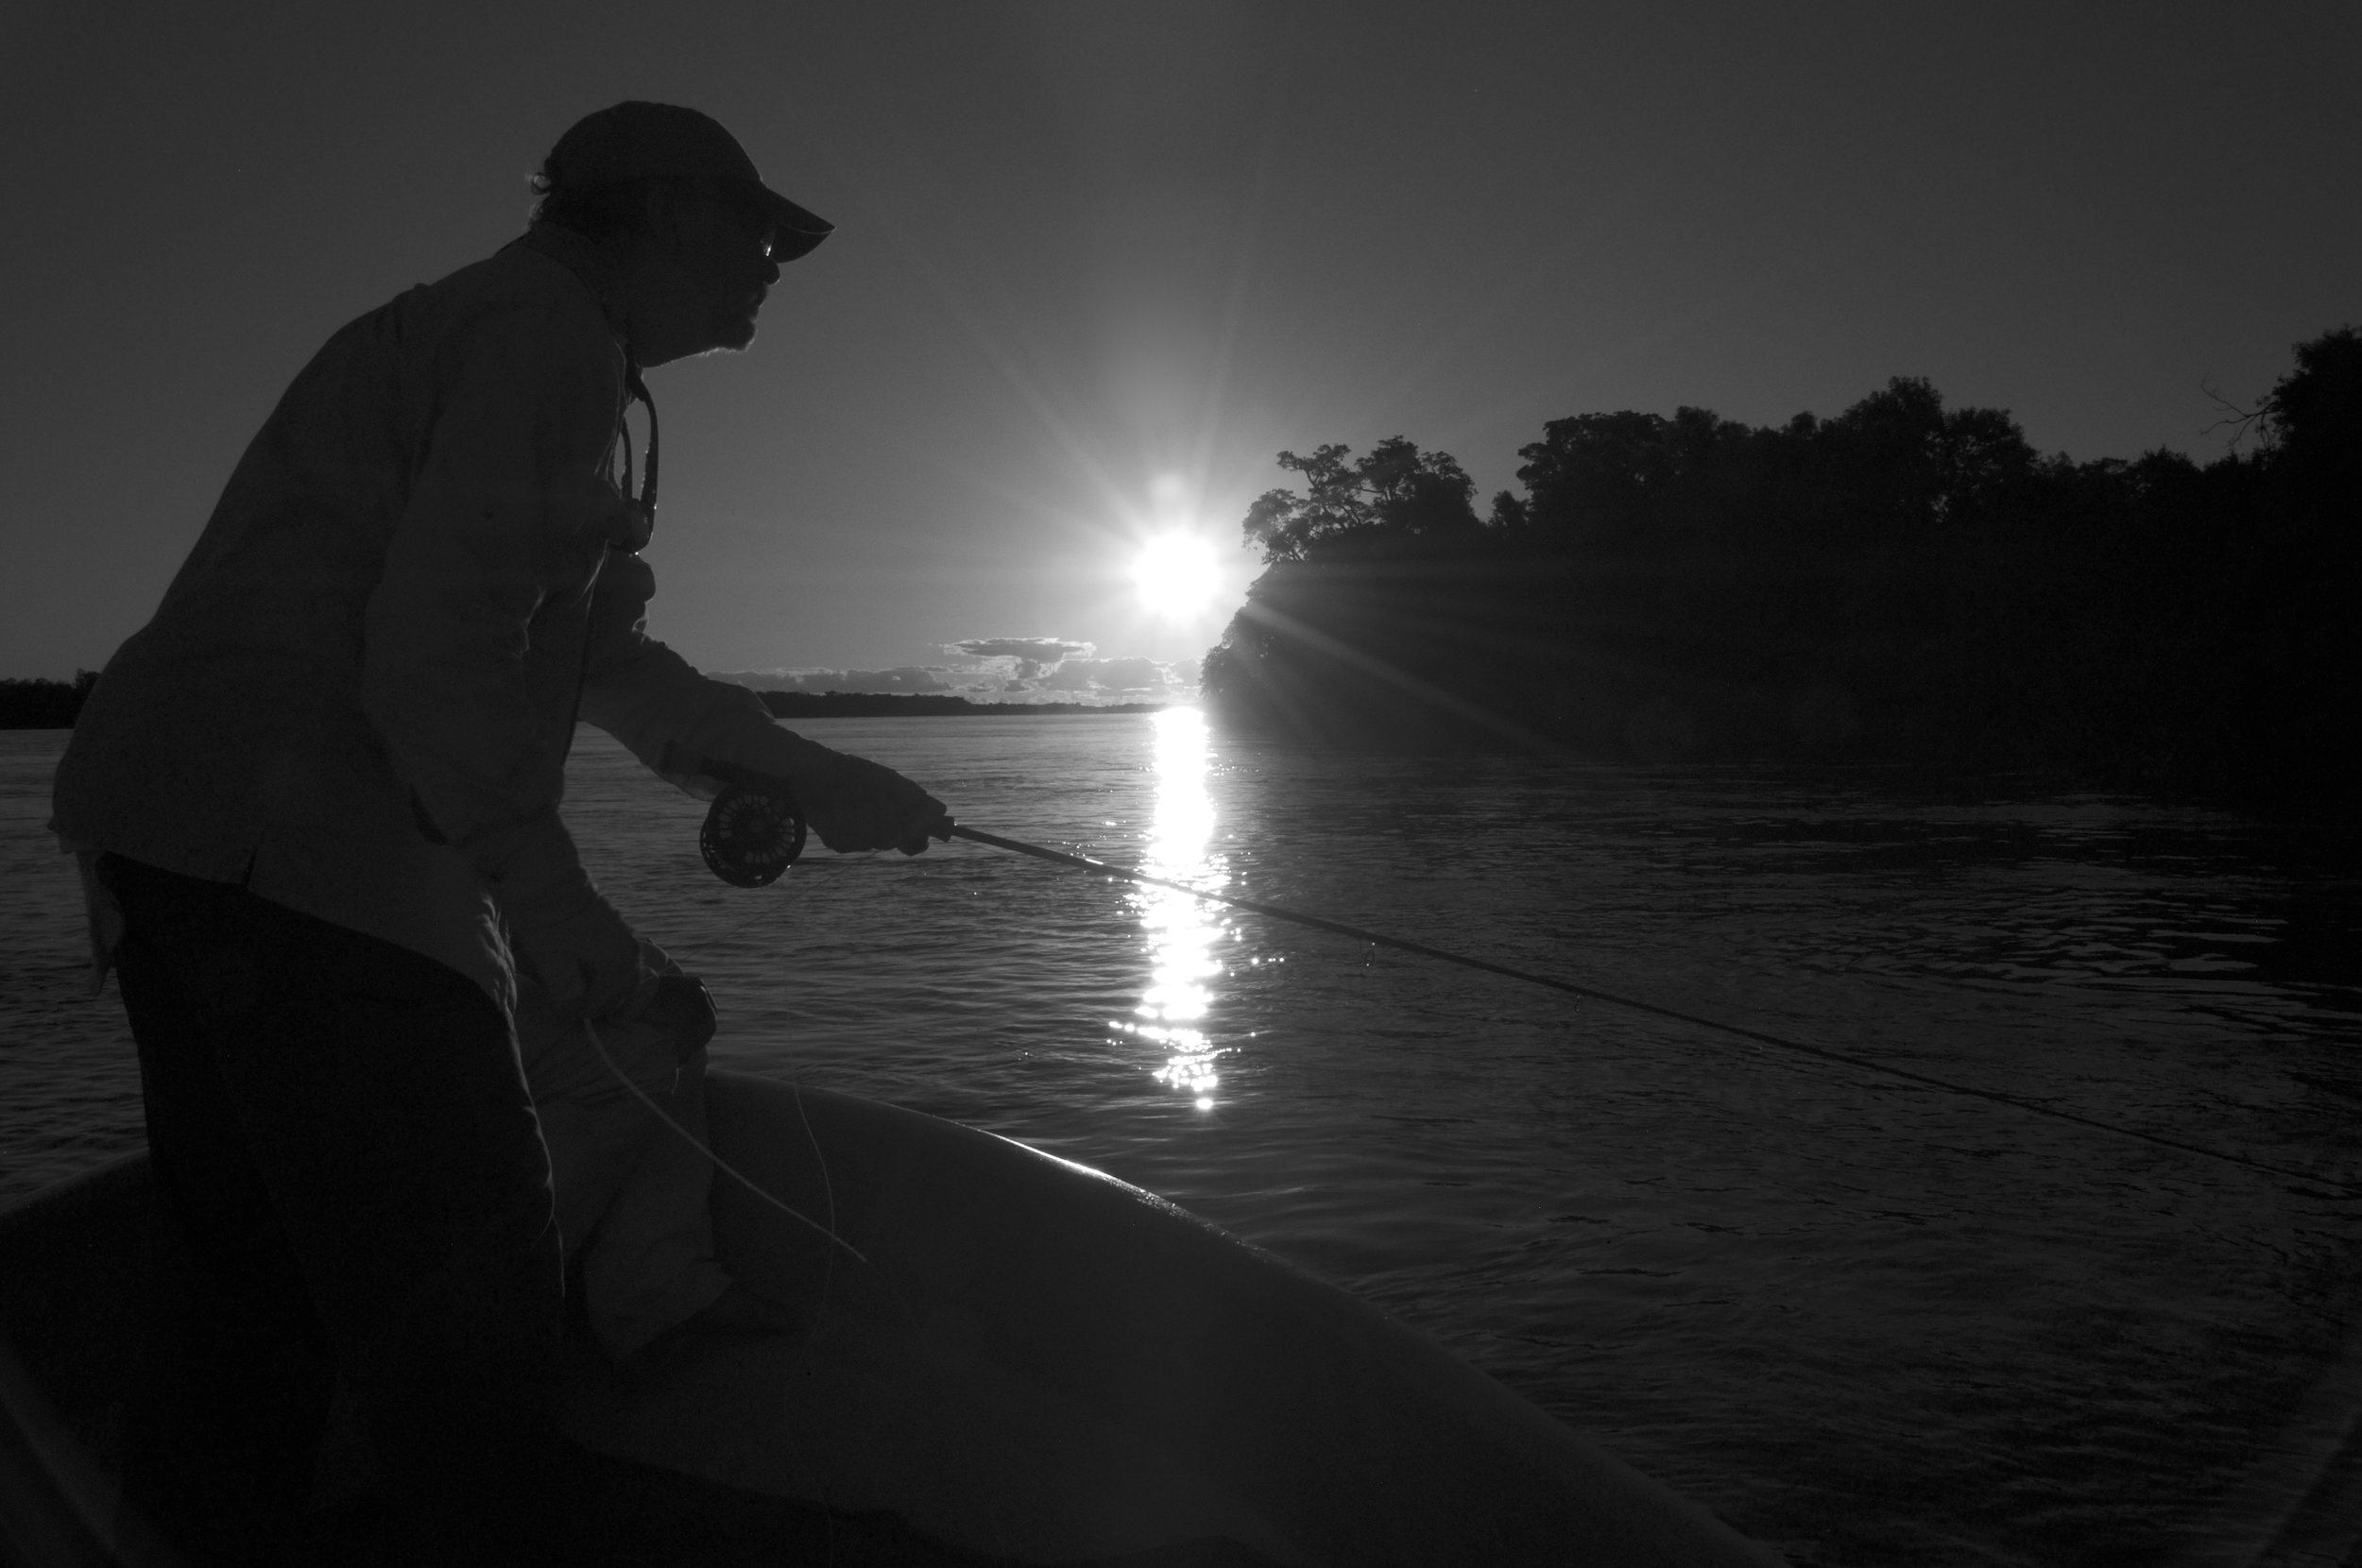 Fly Fishing the Parana River on the Paraguay/Argentine border near Brazil.